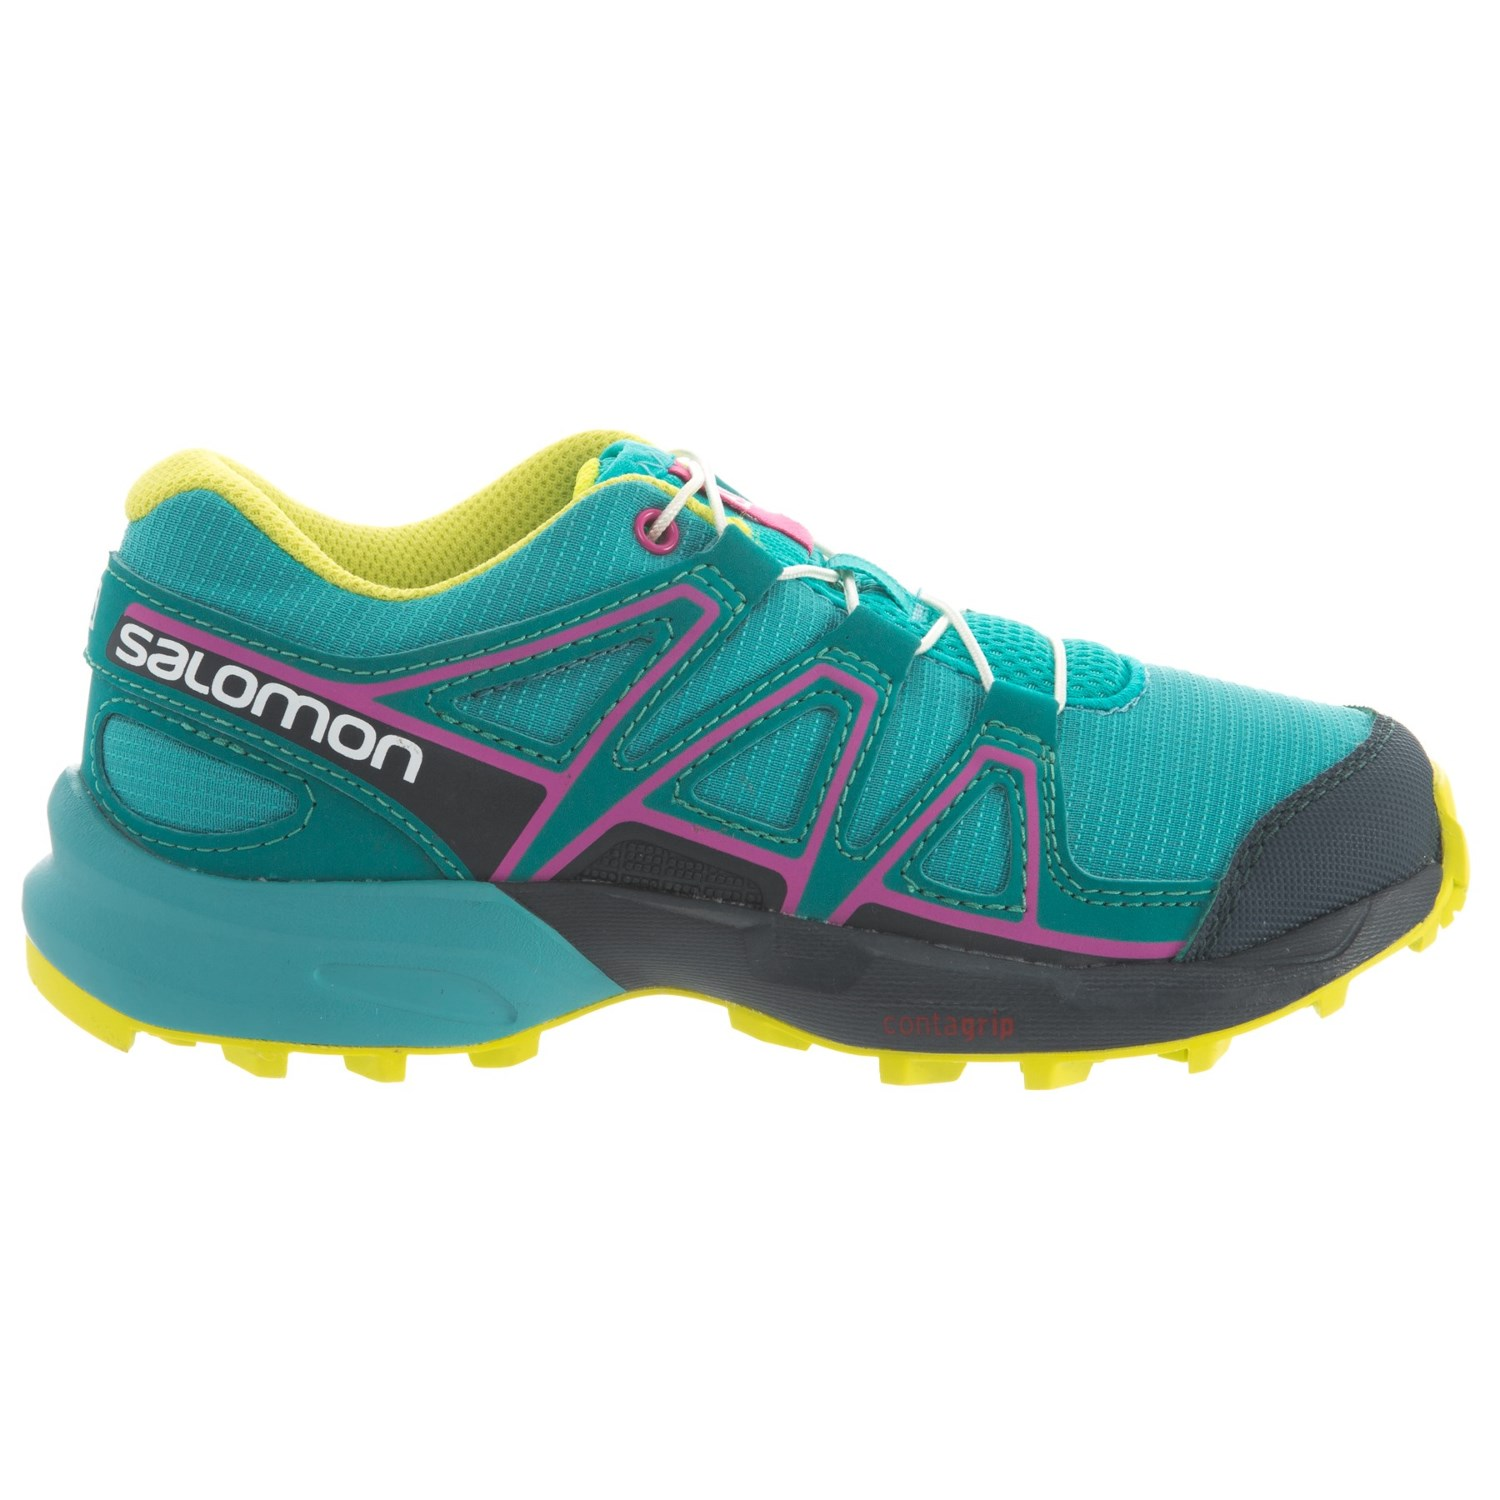 389cf8b0e474 Salomon Speedcross Trail Running Shoes (For Kids) - Save 46%